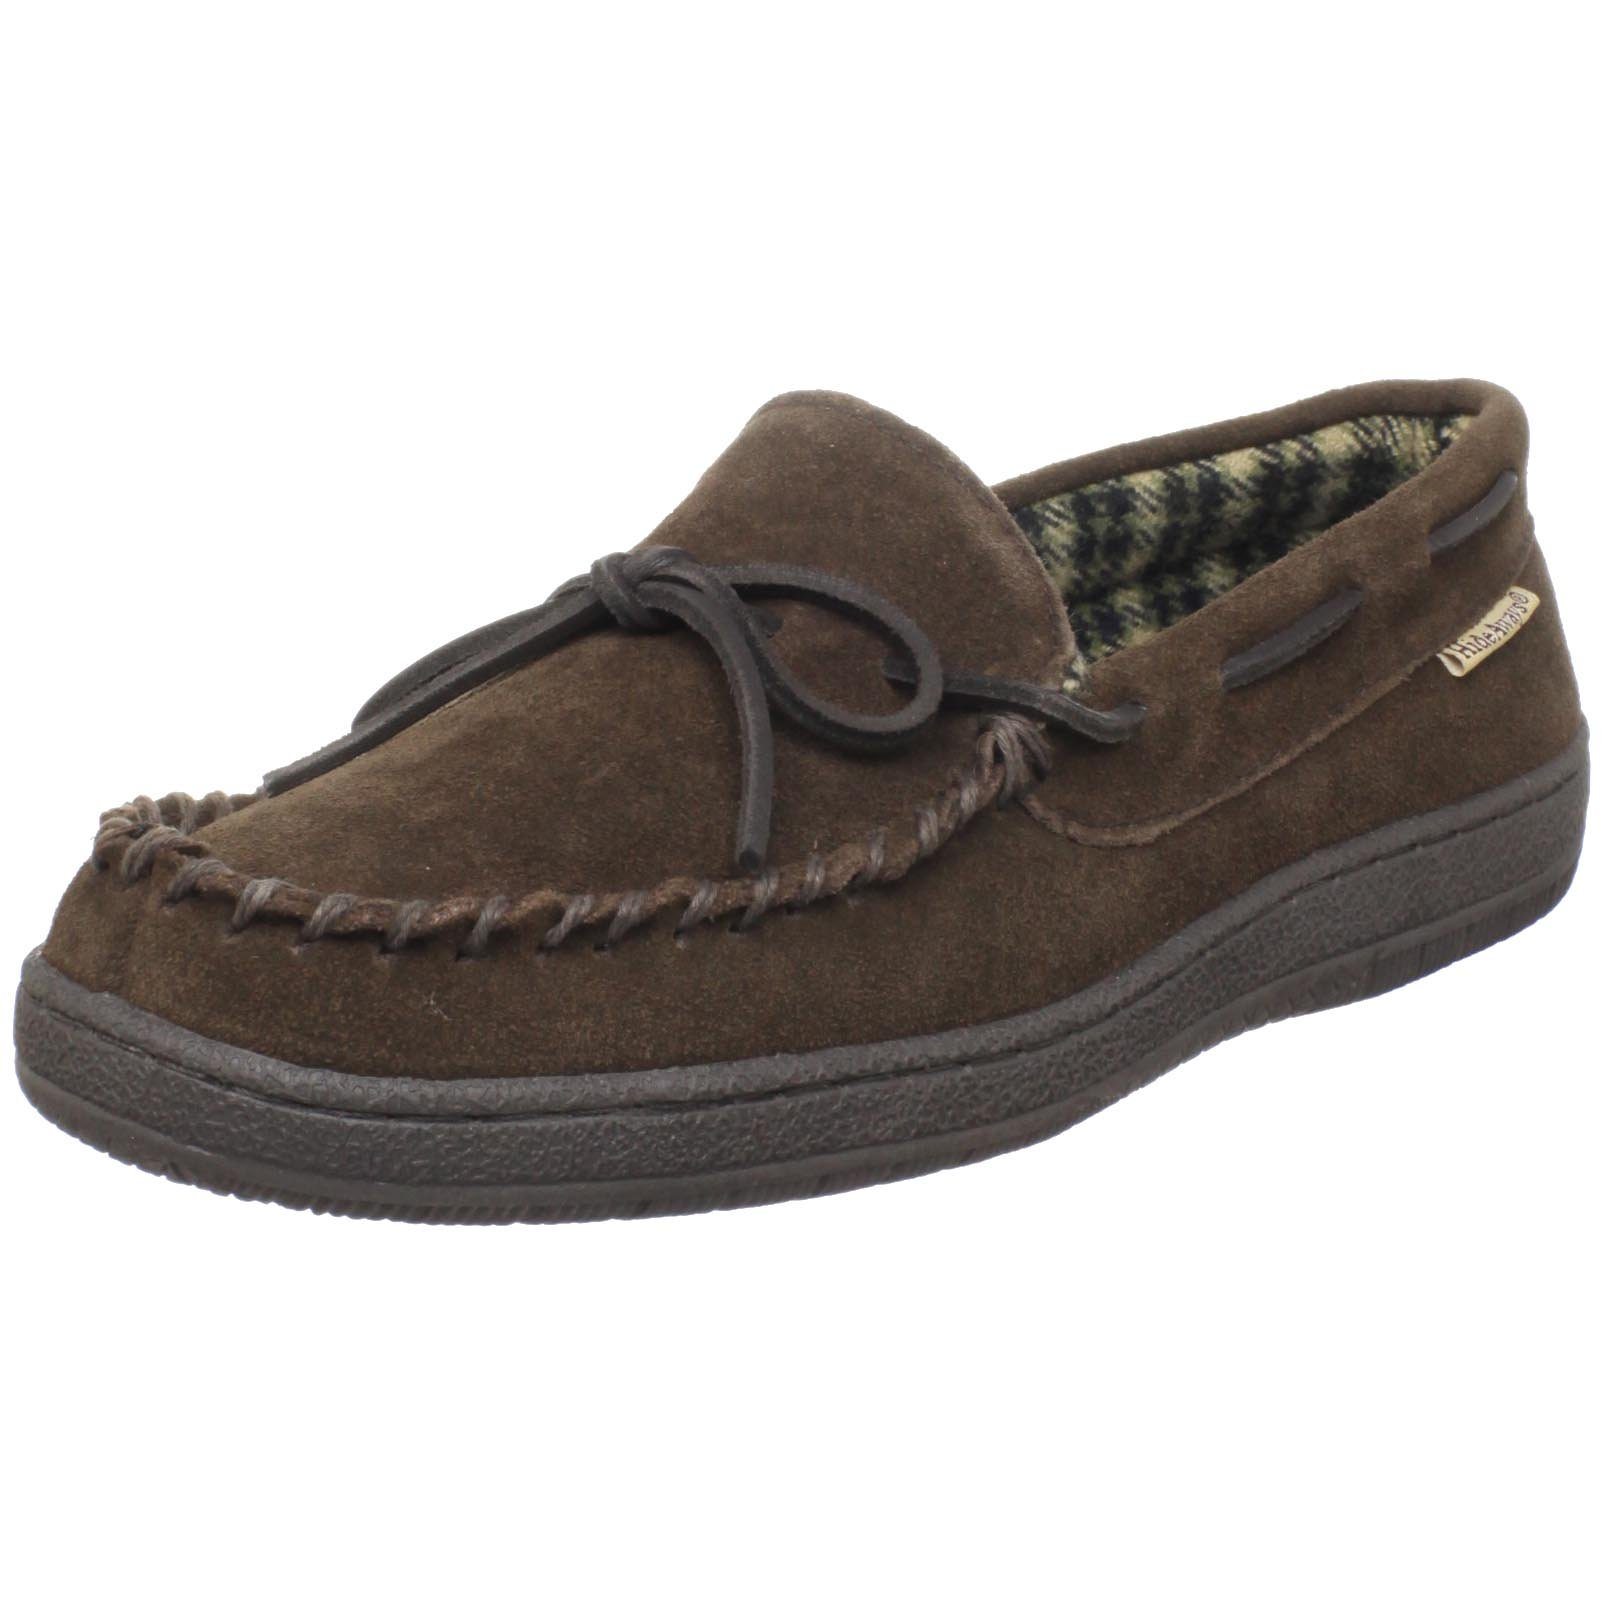 L.B. Evans Men's Marion, Chocolate, 12 EEE by L.B. Evans